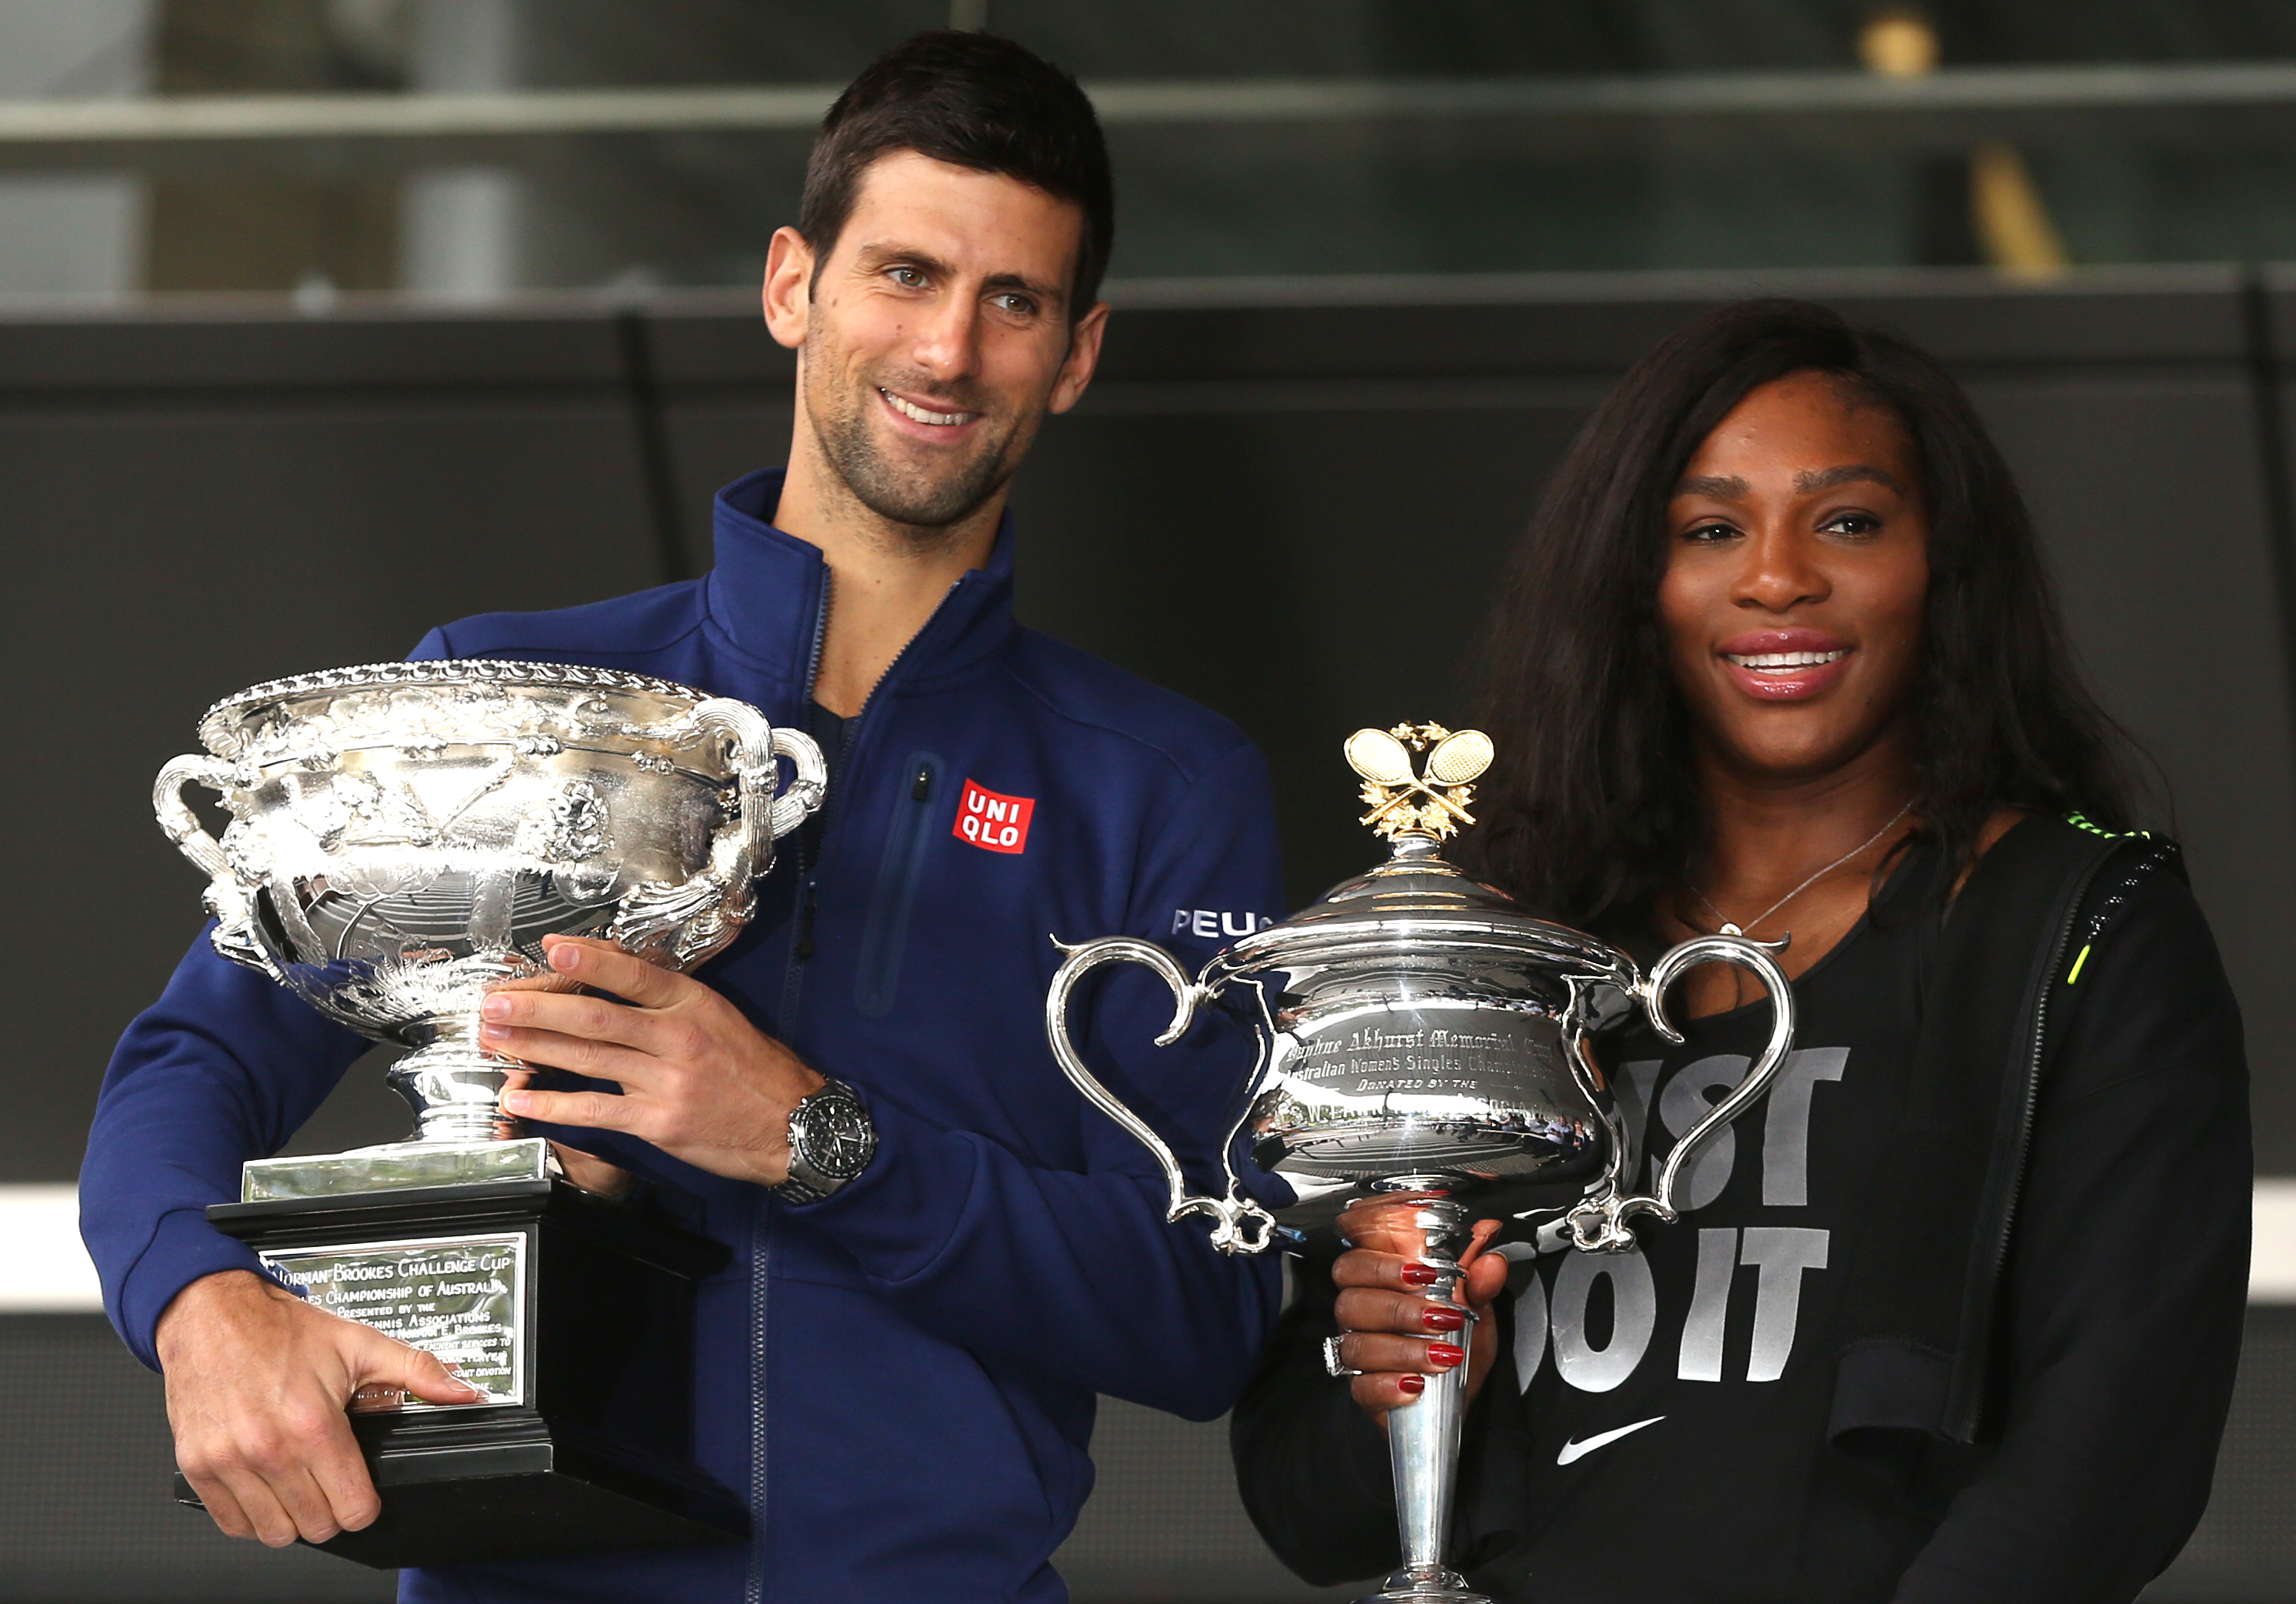 Defending champions Serena Williams of the US and Serbia's Novak Djokovic pose for a photo with their trophies as they arrive for the official draw at the Australian Open tennis championships in Melbourne, Australia, Friday, Jan. 15, 2016. (AP Photo/Mark